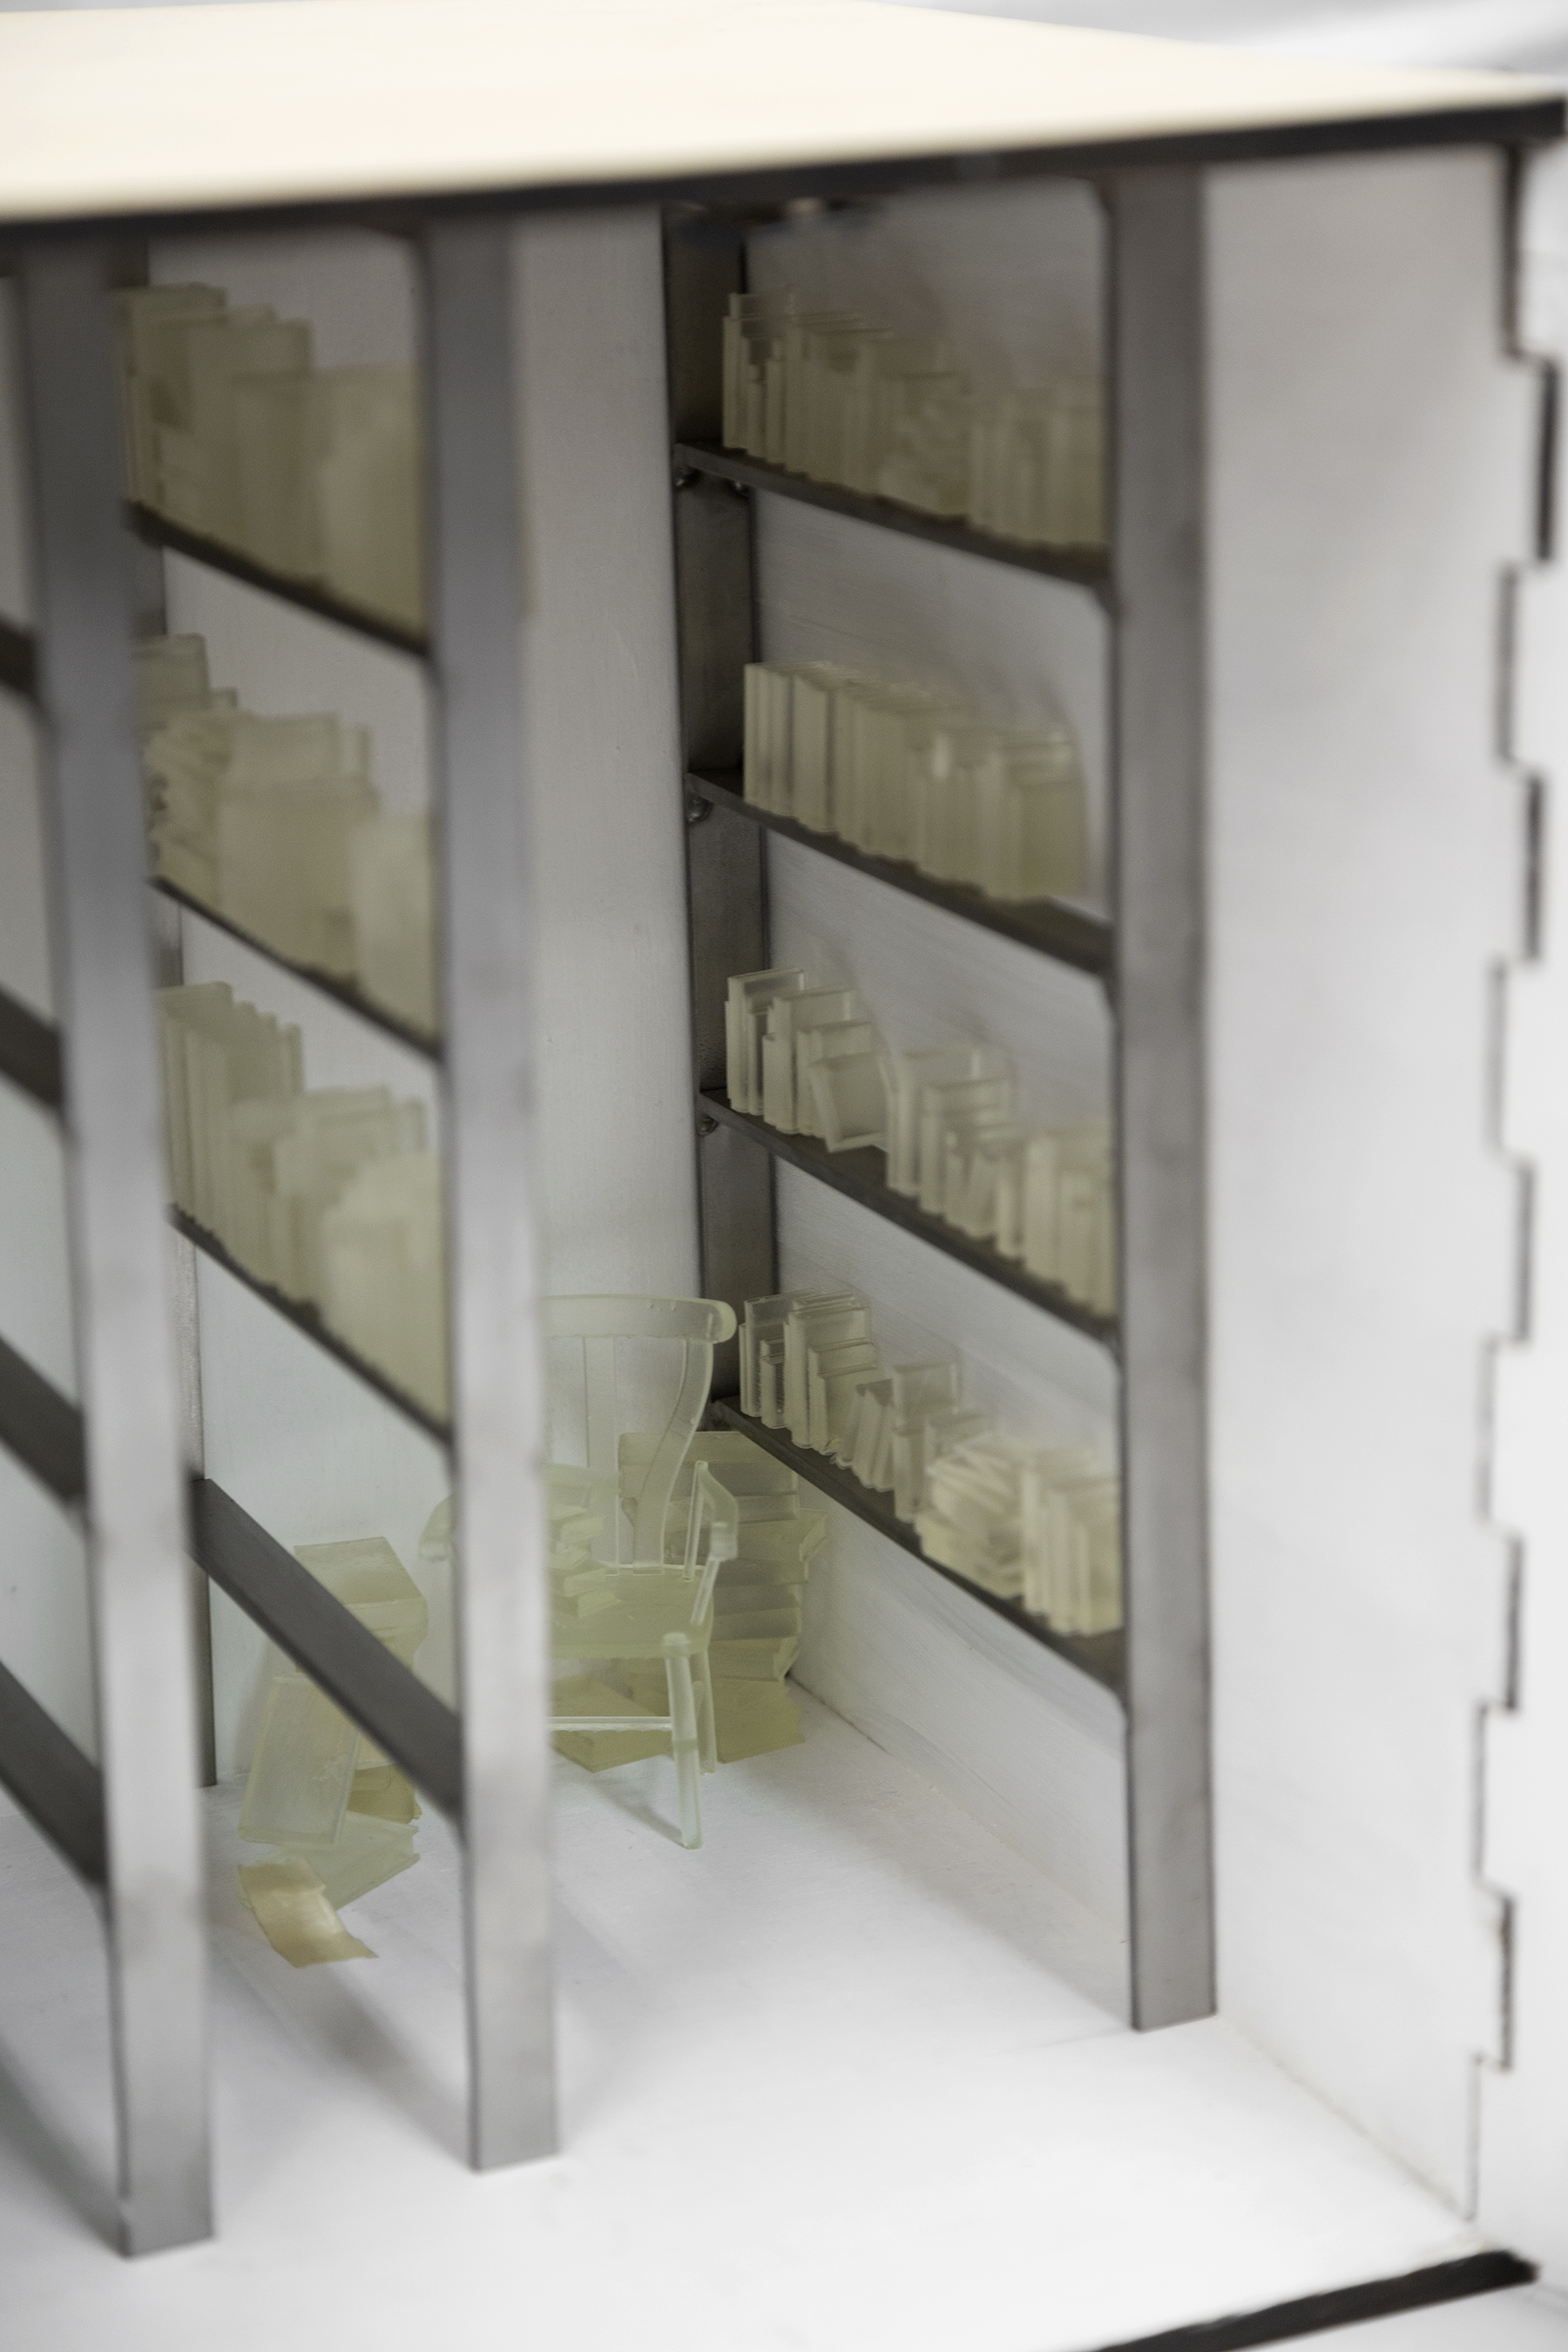 Kristina McComb, Close up detail of 3D printed books scattered across the miniature library shelves